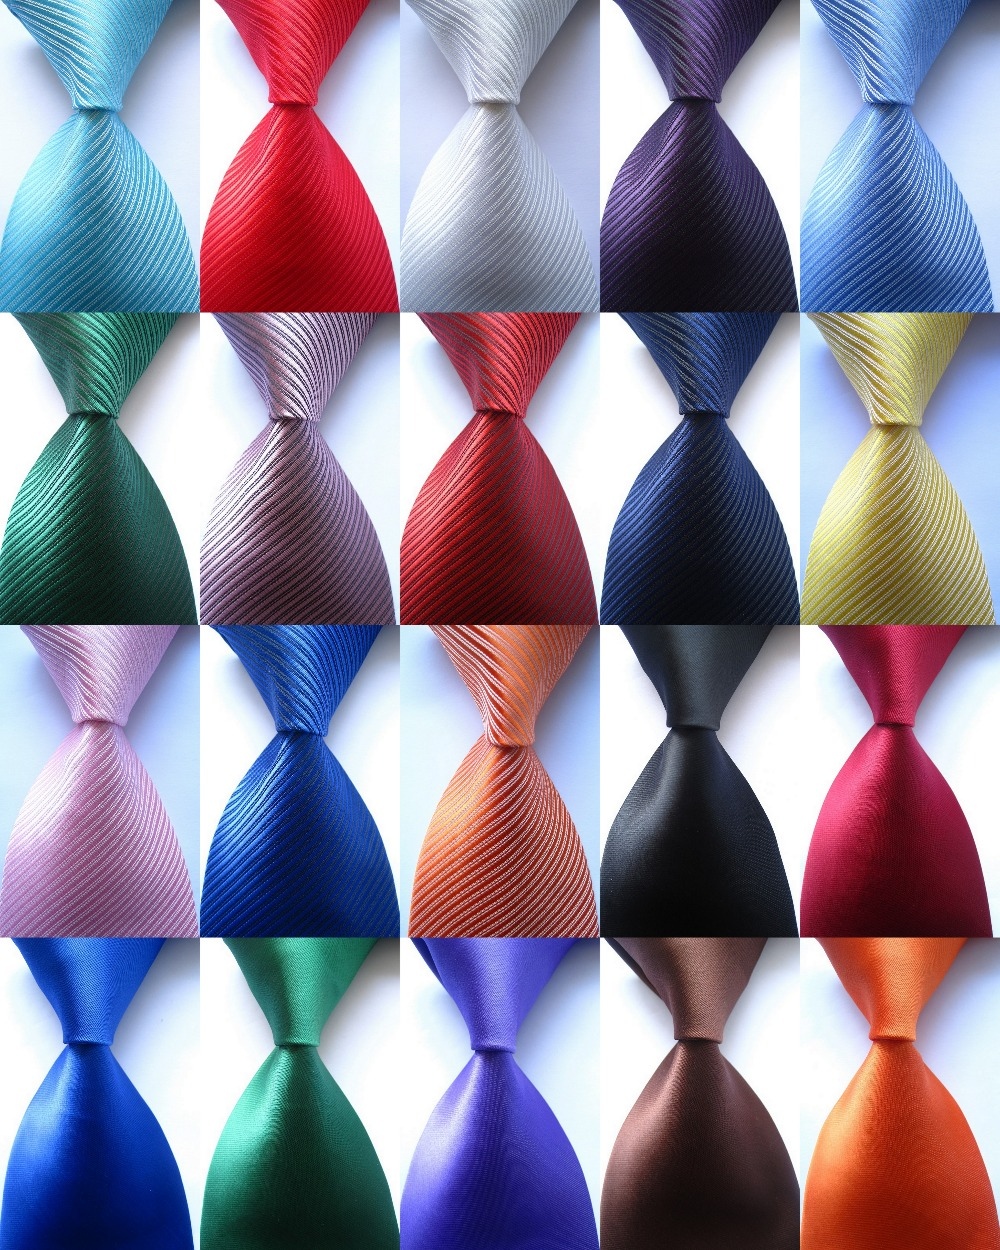 2016 New Classic Solid Striped Plain 20Colors JACQUARD WOVEN Silk Polyester Men's Tie Business Wedding Party Luxury Necktie TX01(China (Mainland))